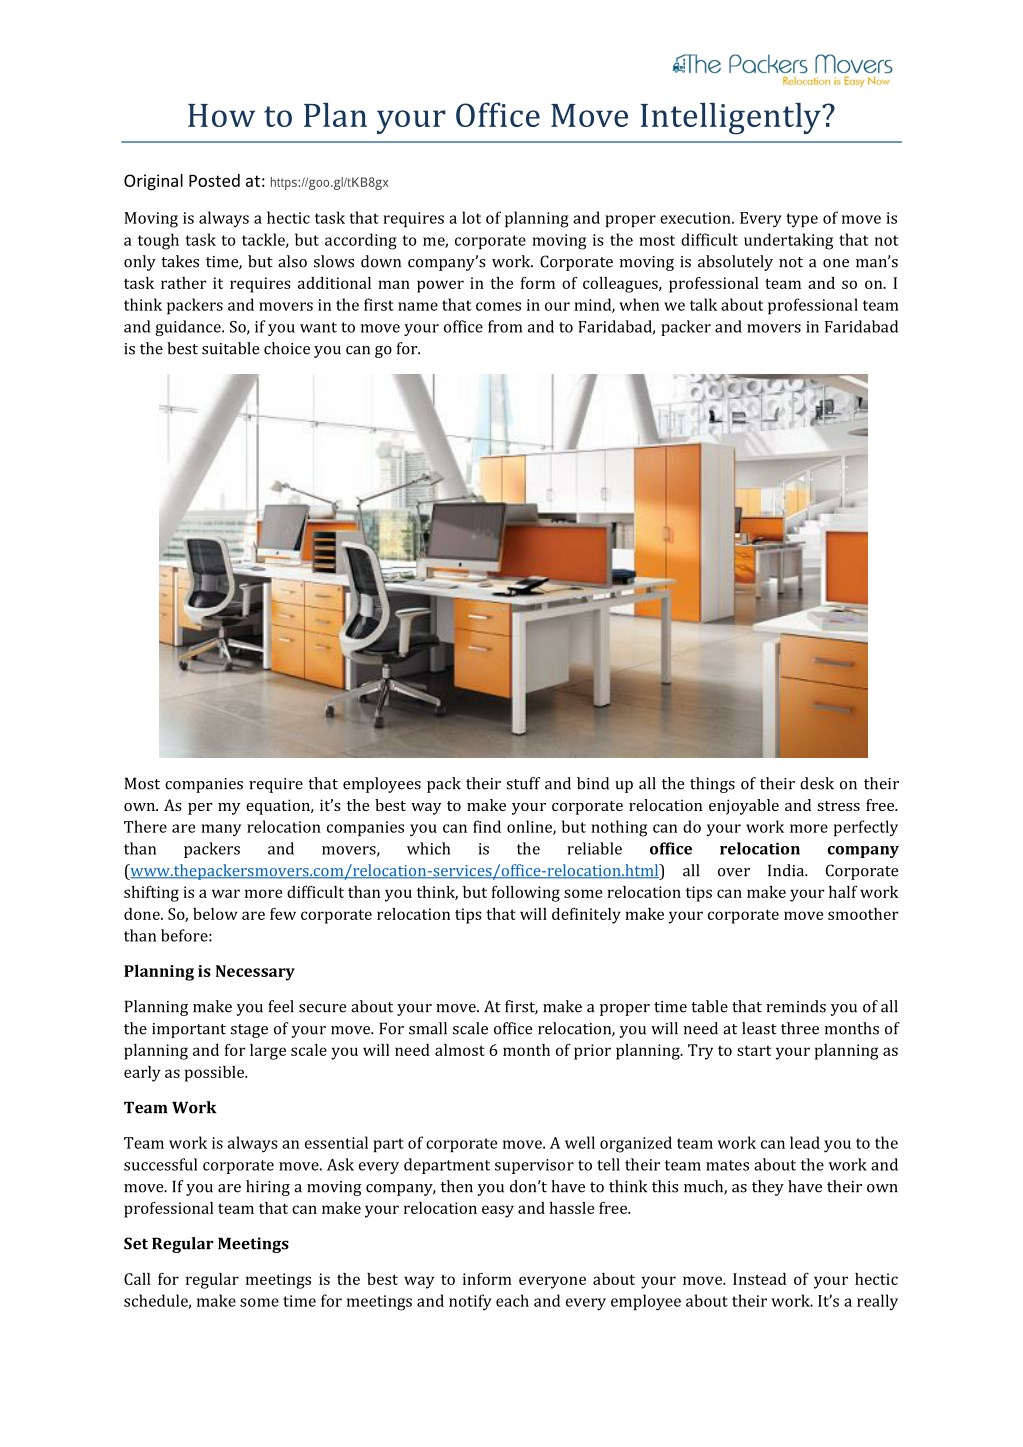 Ppt How To Plan Your Office Move Intelligently Powerpoint Presentation Id 7739110